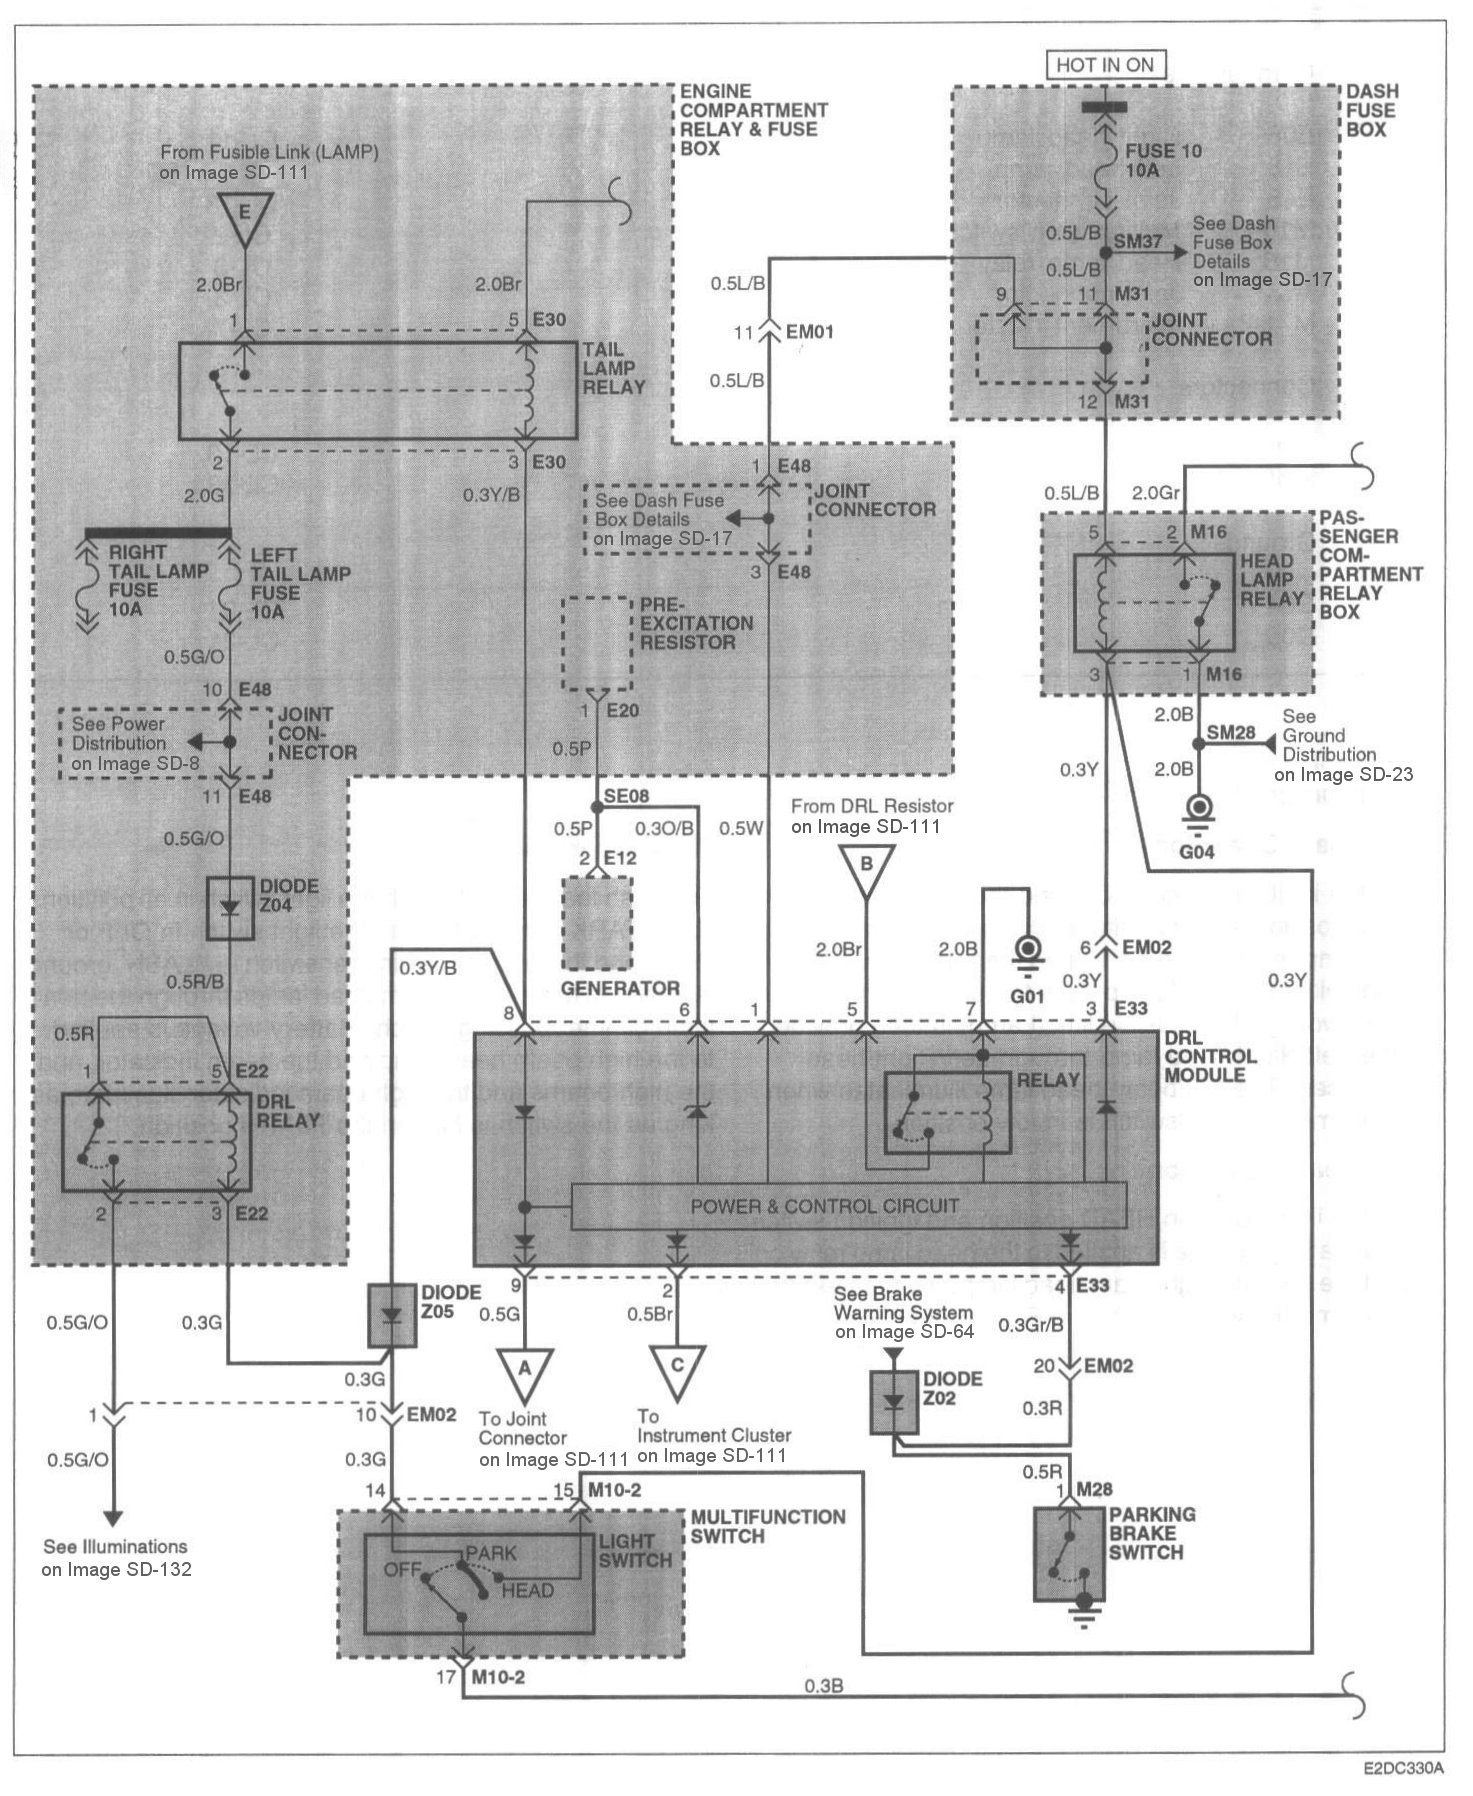 Hyundai Excel Wiring Diagram 1998 Landor Accent 2000 Sedan Free I Have A 2002 Just Recently The Battery Was Going